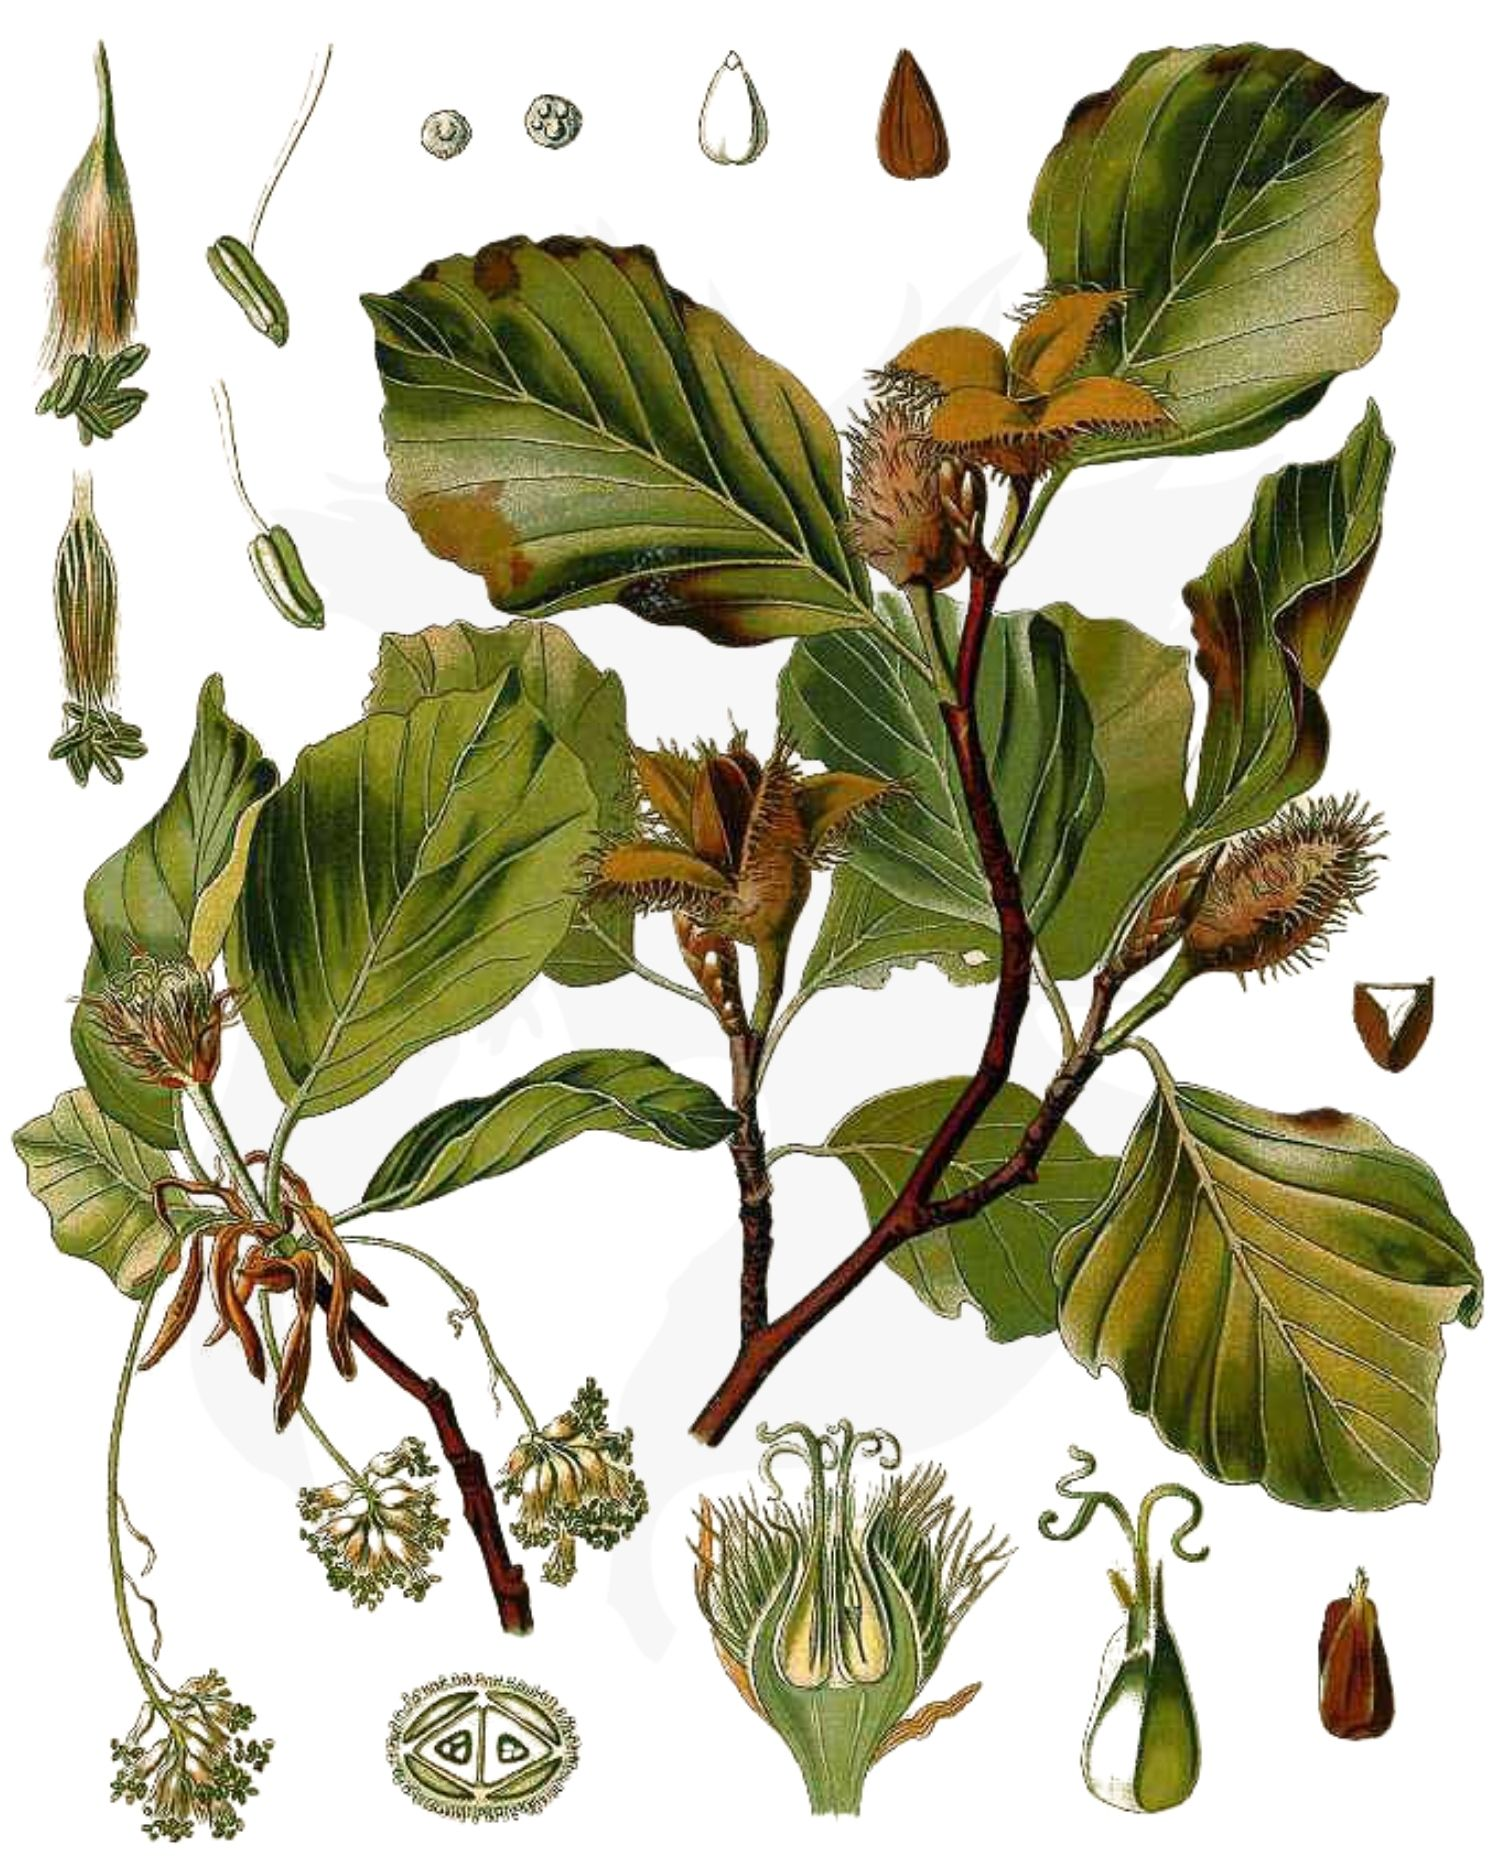 Beech - A Foraging Guide to Its Food, Medicine and Other Uses